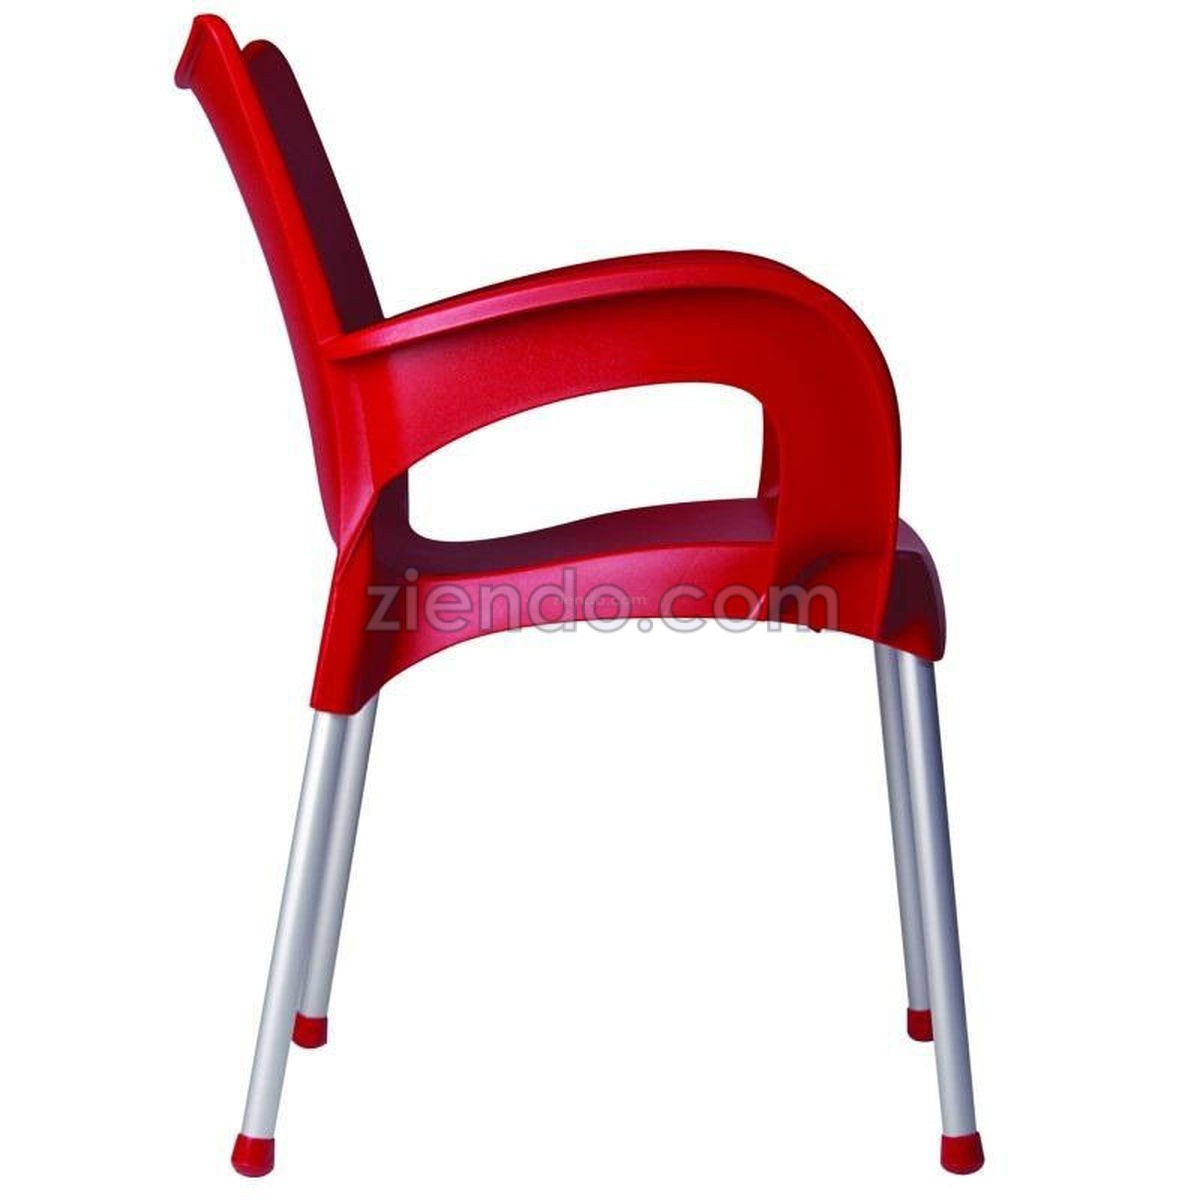 Plastic Outdoor Chair Outdoor Multipurpose Plastic Arm Chair Red Ziendo Online